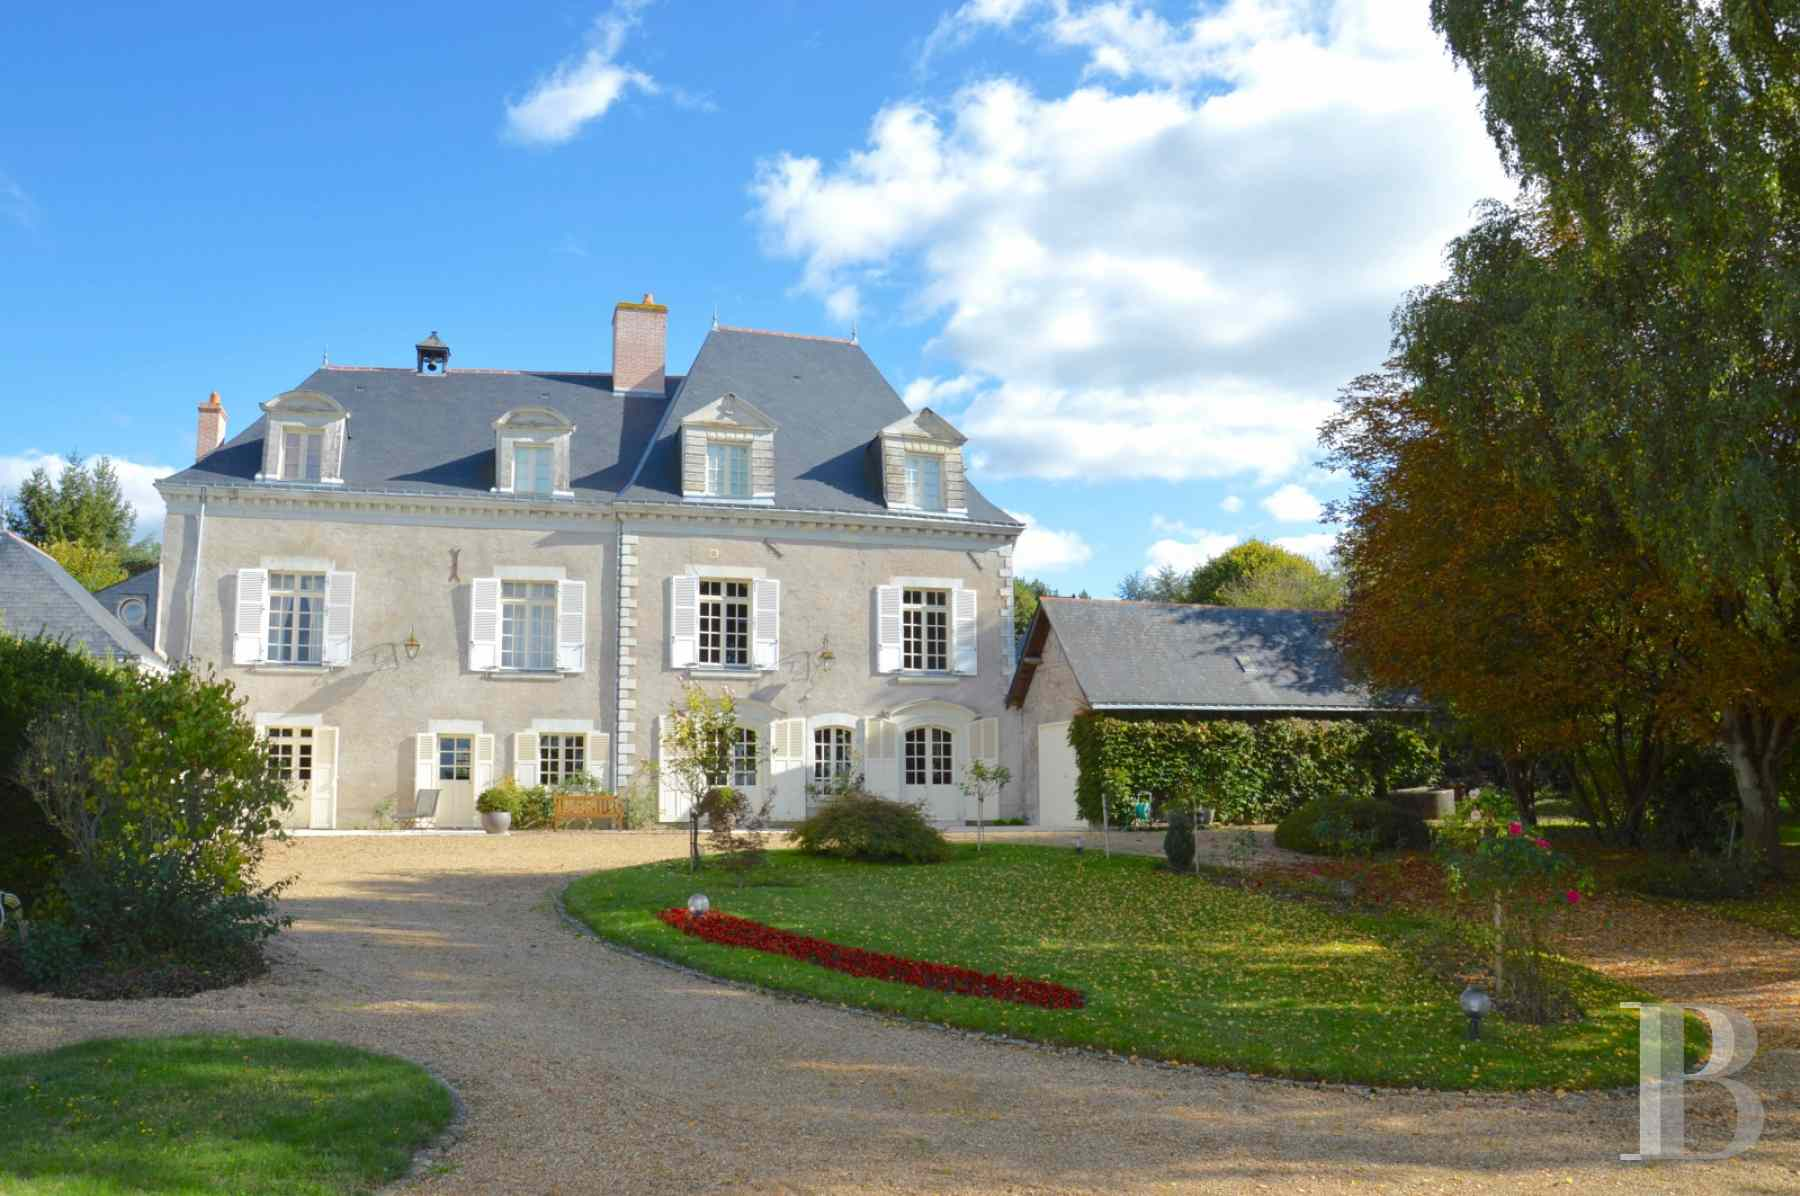 France mansions for sale pays de loire 17th century - 1 zoom